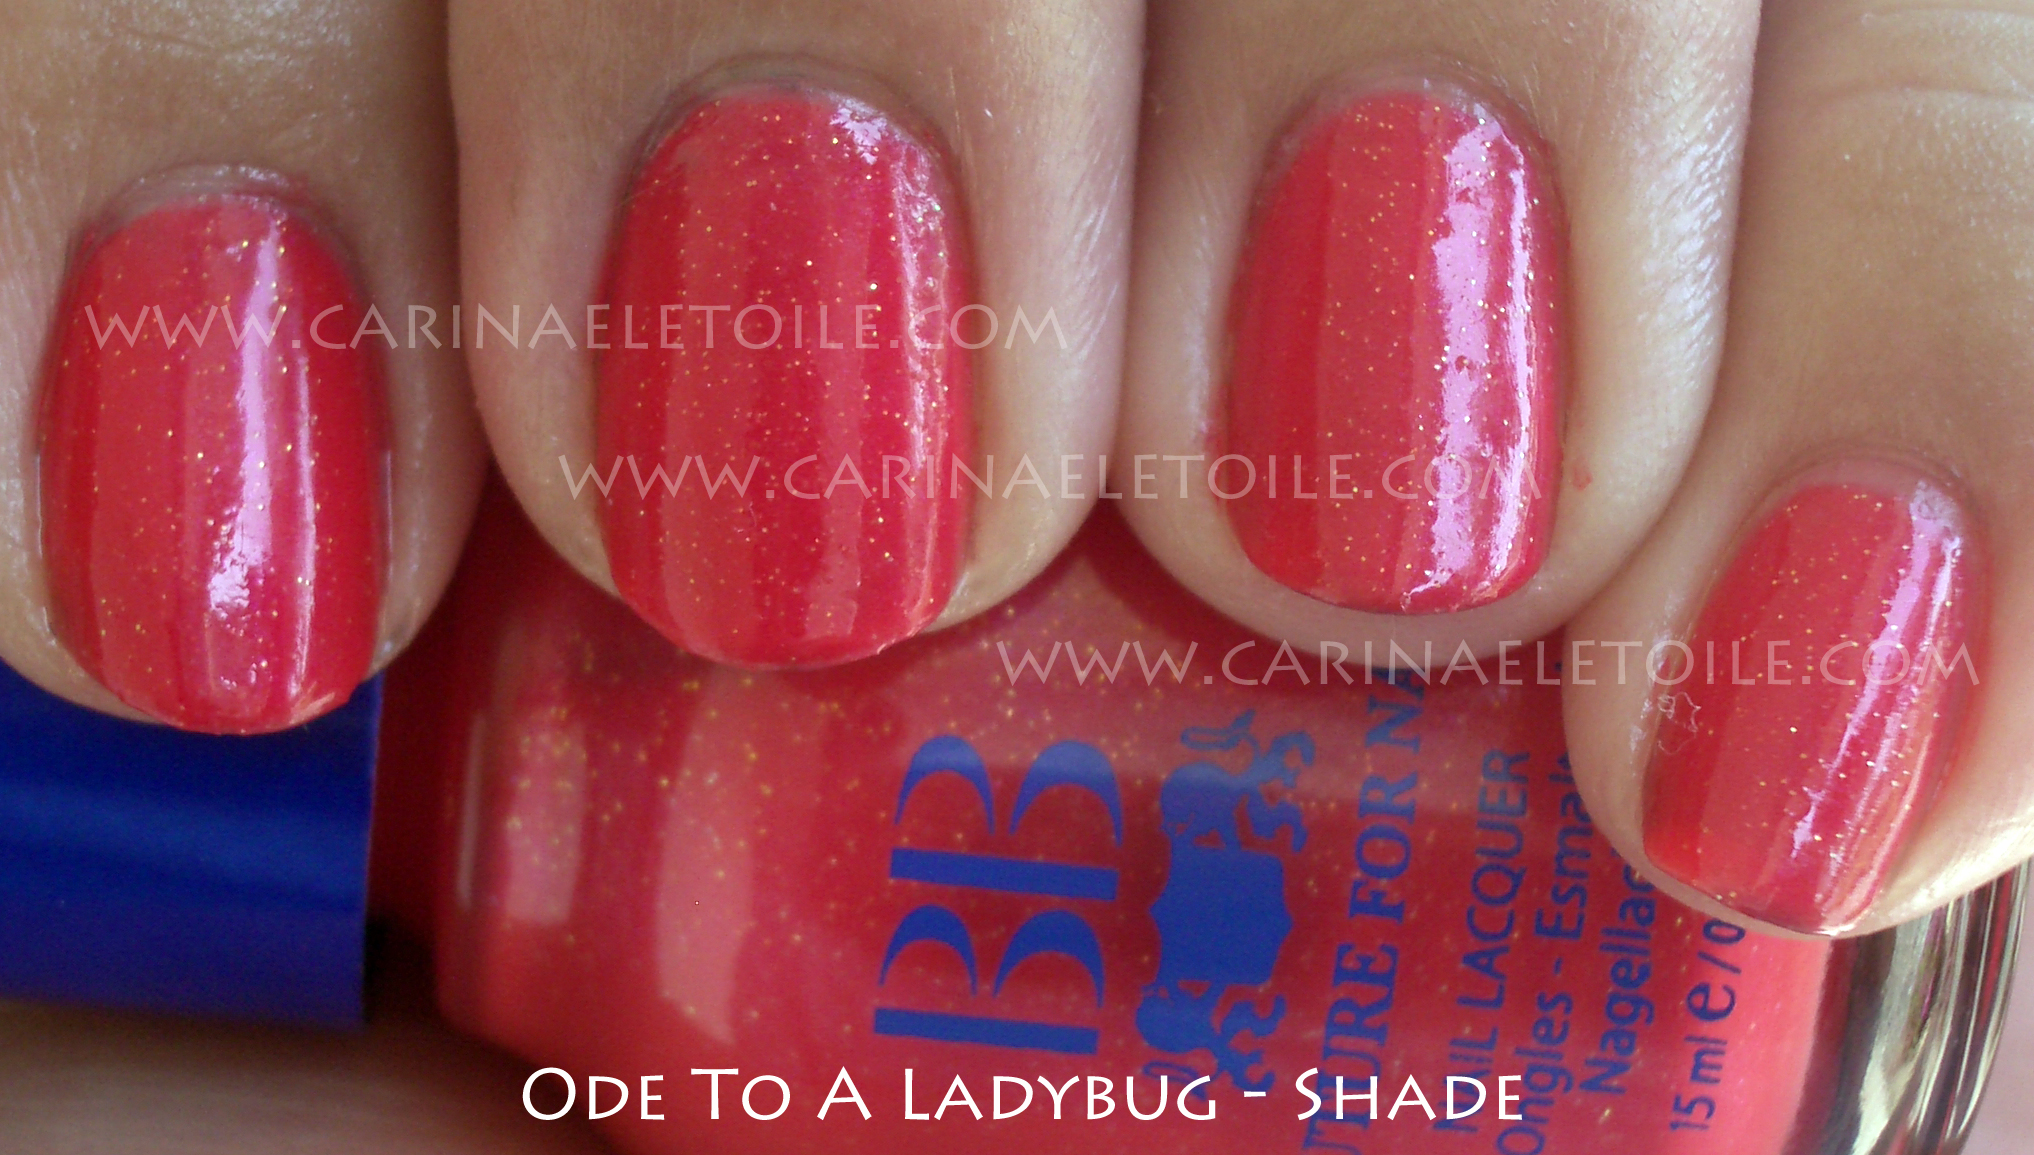 BB Couture Ode To A Ladybug